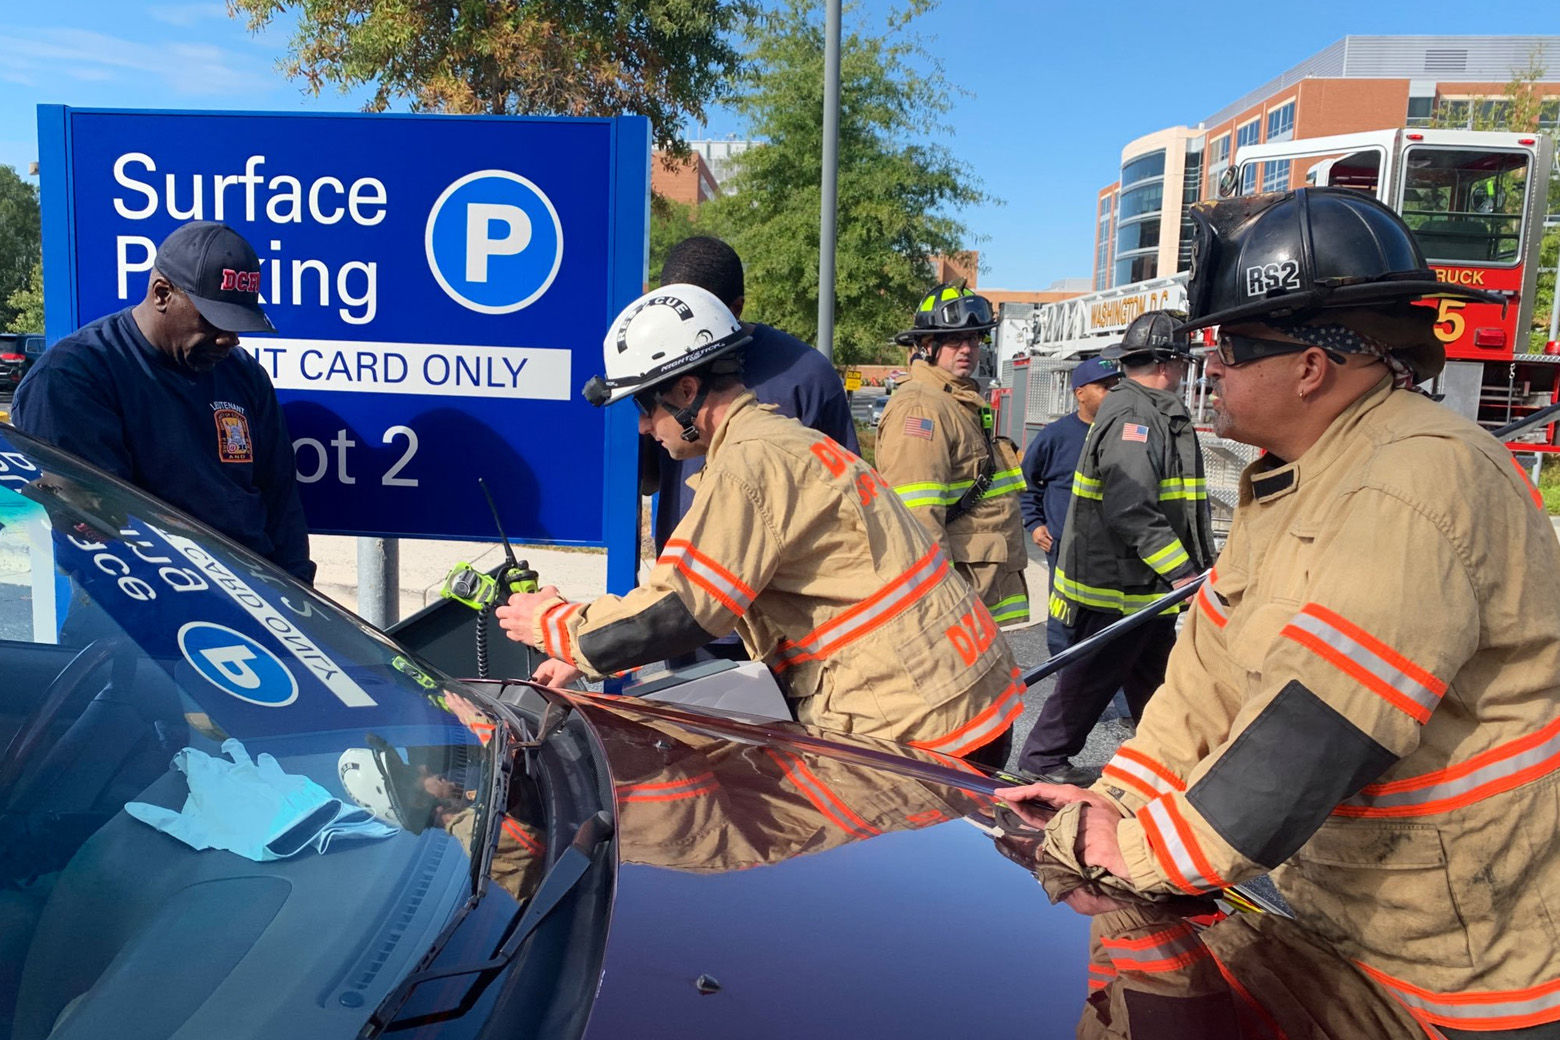 The woman was not seriously hurt in the mishap, but she did have to have to be rescued by D.C. firefighters.